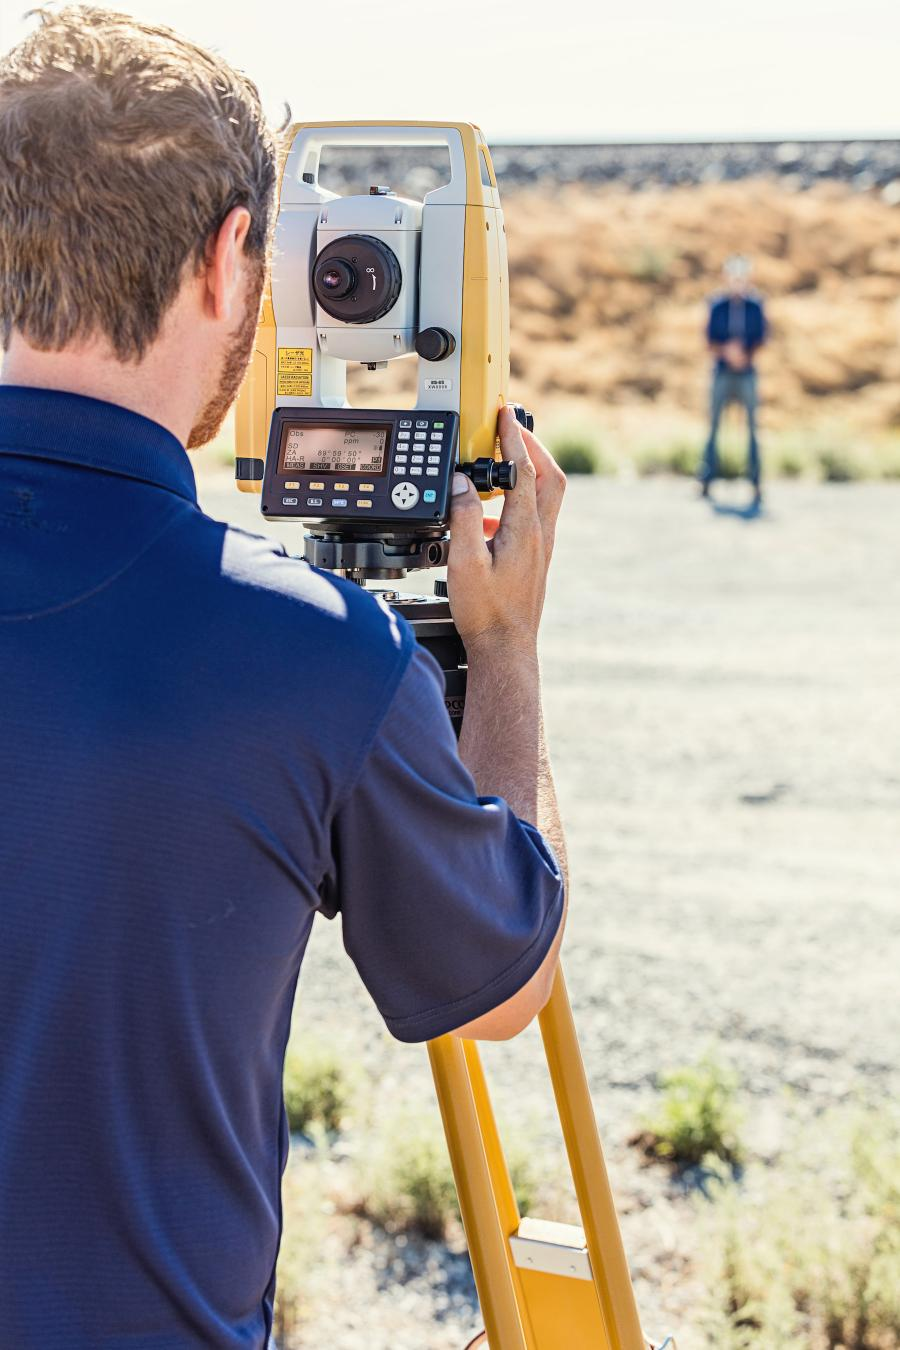 ES Series Total Station With Advanced Data Transfer Functionality by Topcon.